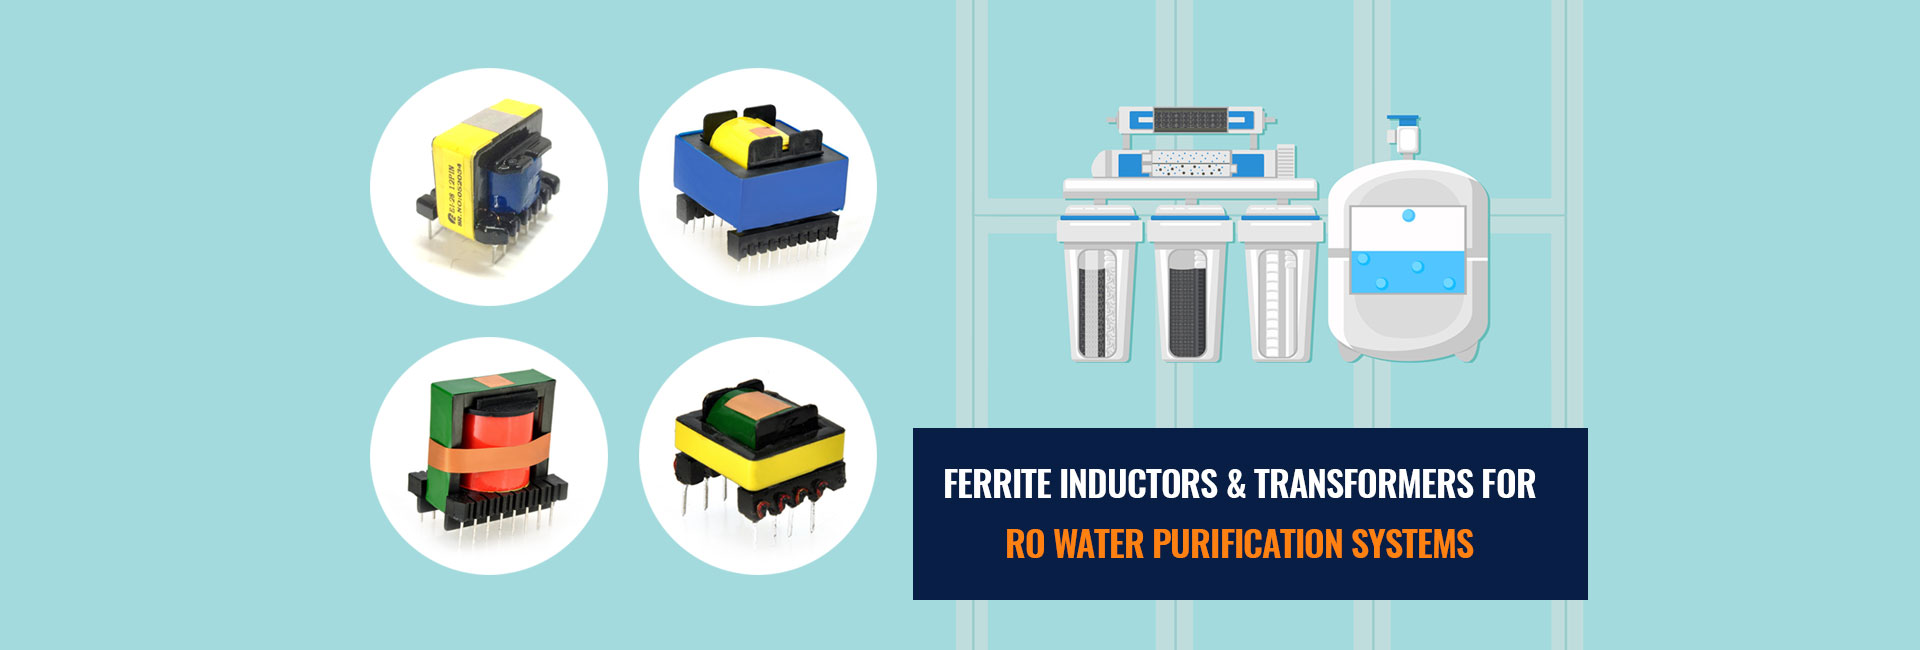 Ferrite Inductors & Transformers For RO Water Purification Systems